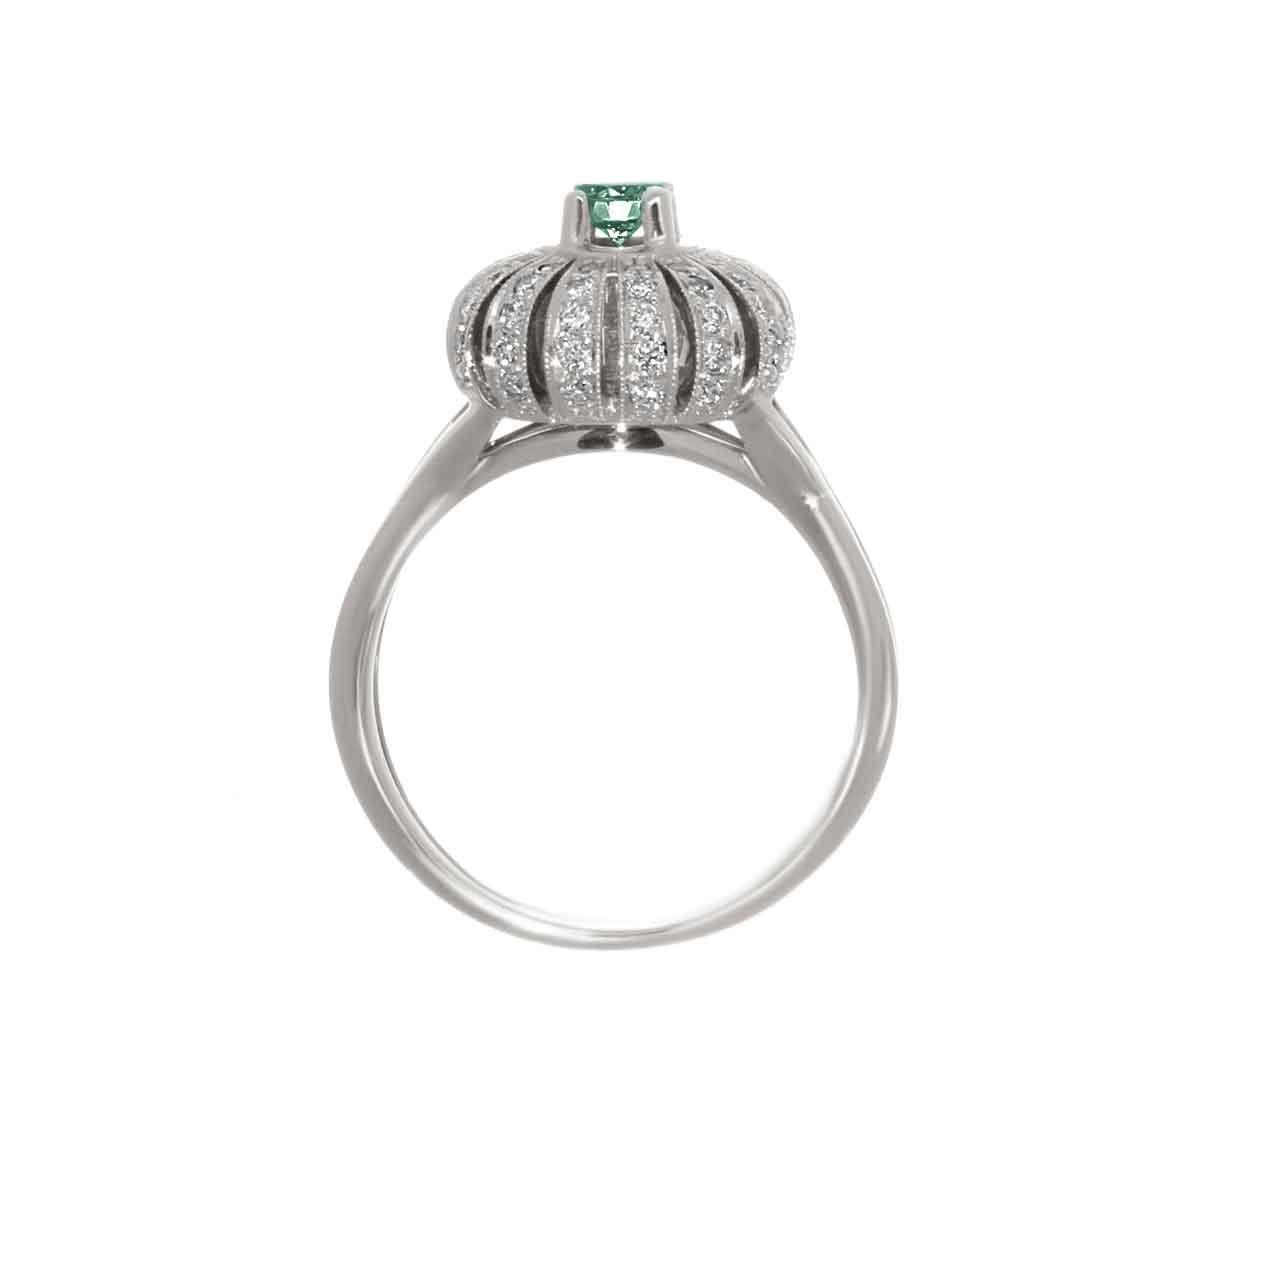 Certified emerald ring 2